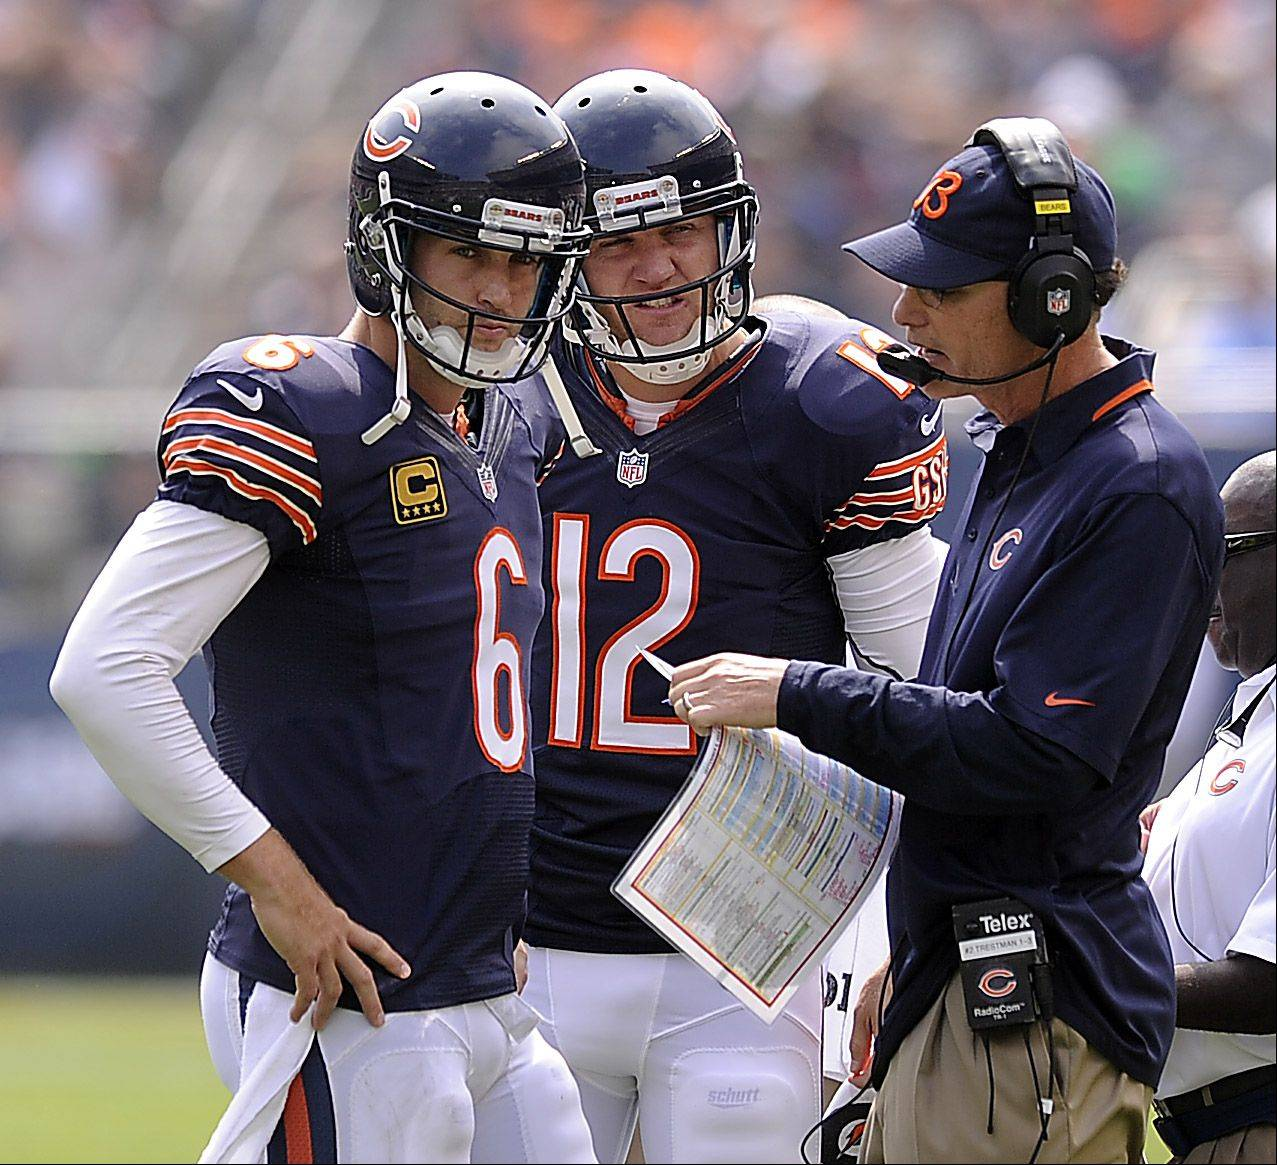 Bears quarterback Jay Cutler, talking things over with coach Marc Trestman during the season-opening win, was happy with the play of his offensive line.